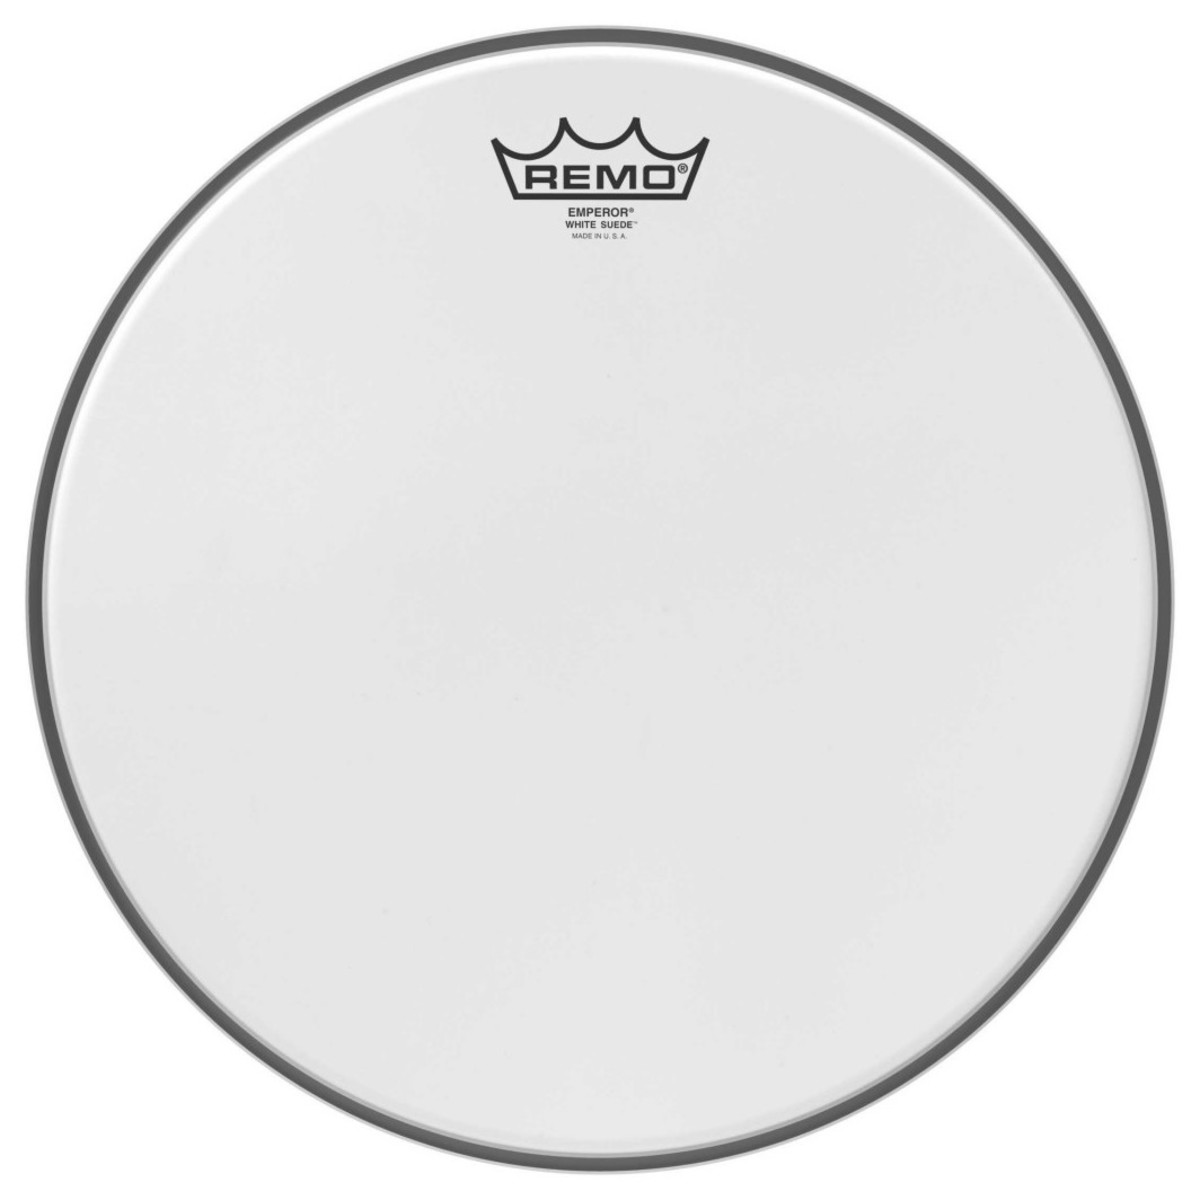 Remo Emperor Suede 13 Drum Head